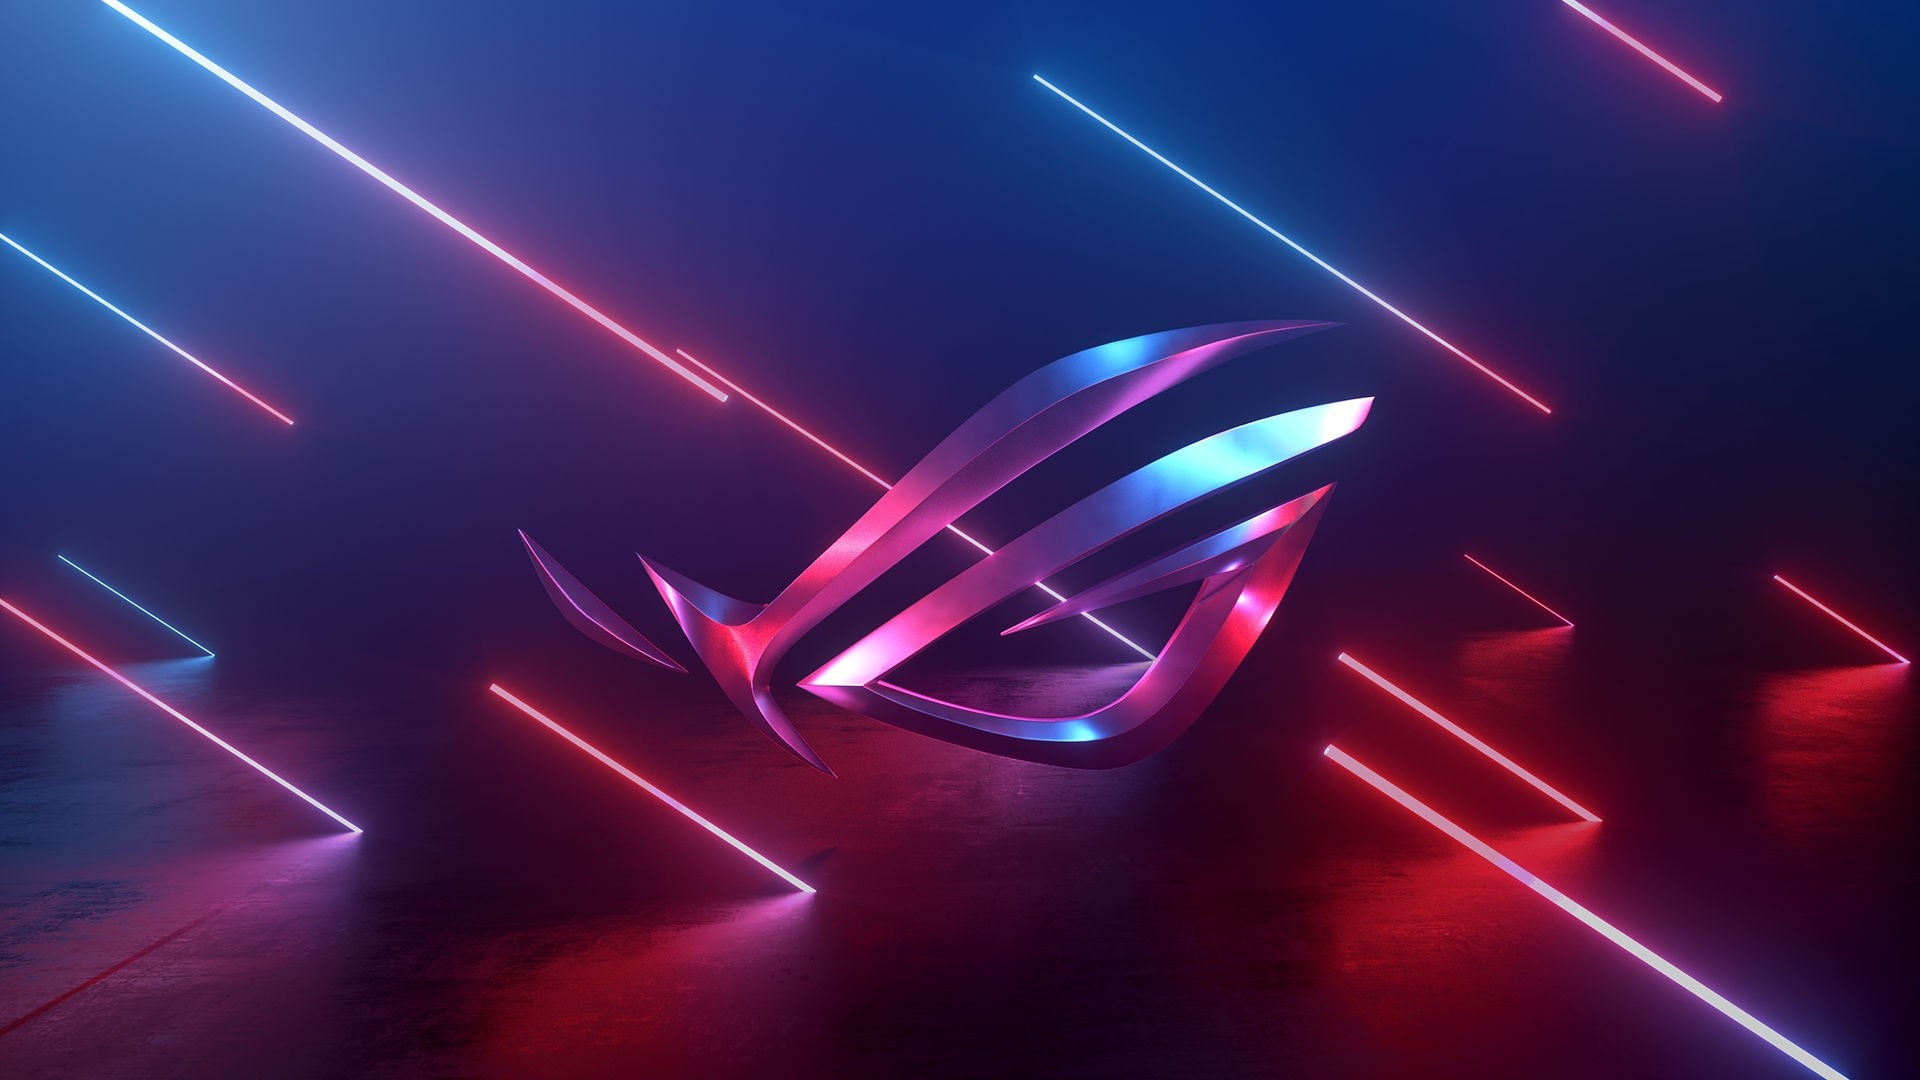 Rog Wallpaper Free Download